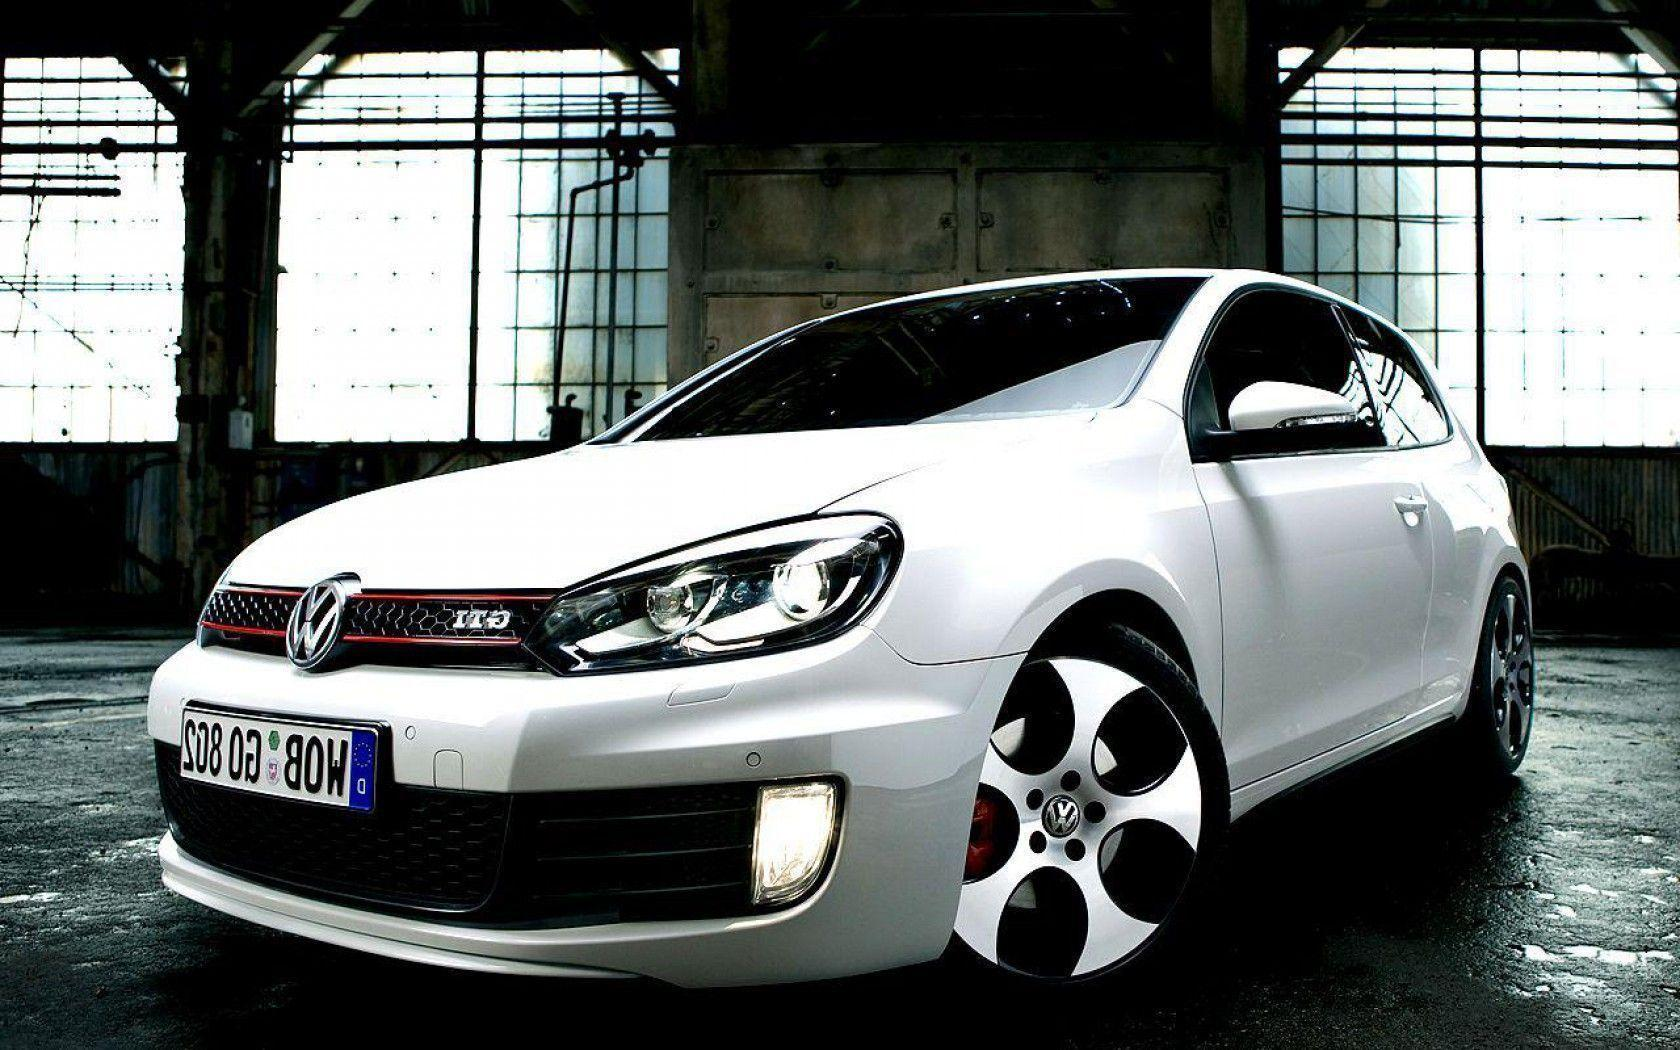 Free Download Wallpapers Cars Full Hd Golf Gti Volkswagen W Year